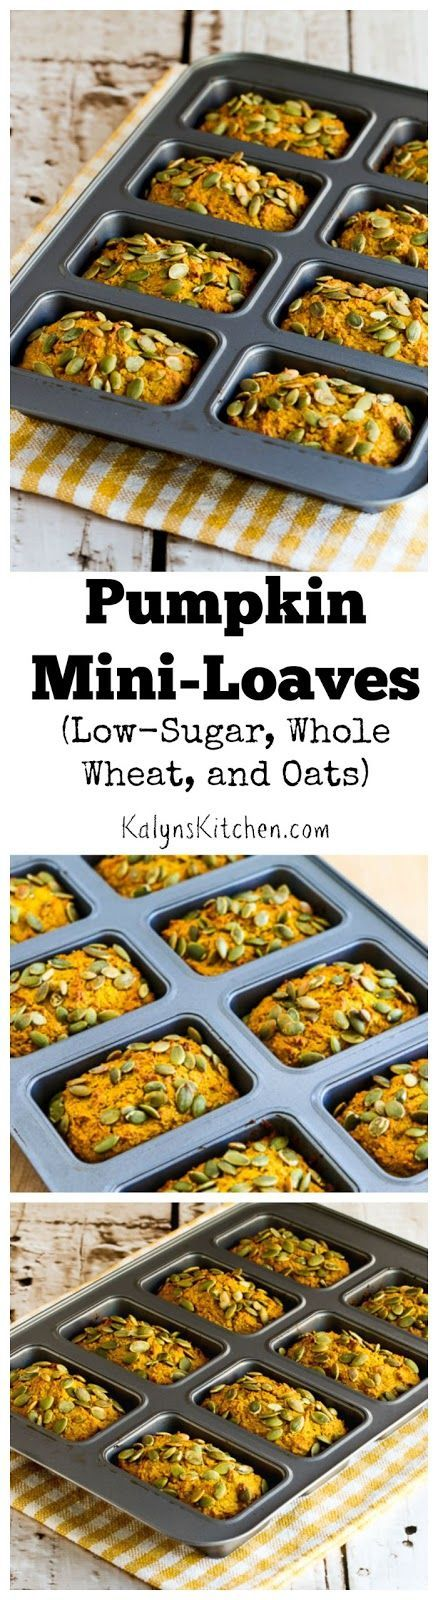 These Low-Sugar, Whole Wheat, and Oats Pumpkin Mini-Loaves were so delicious I…